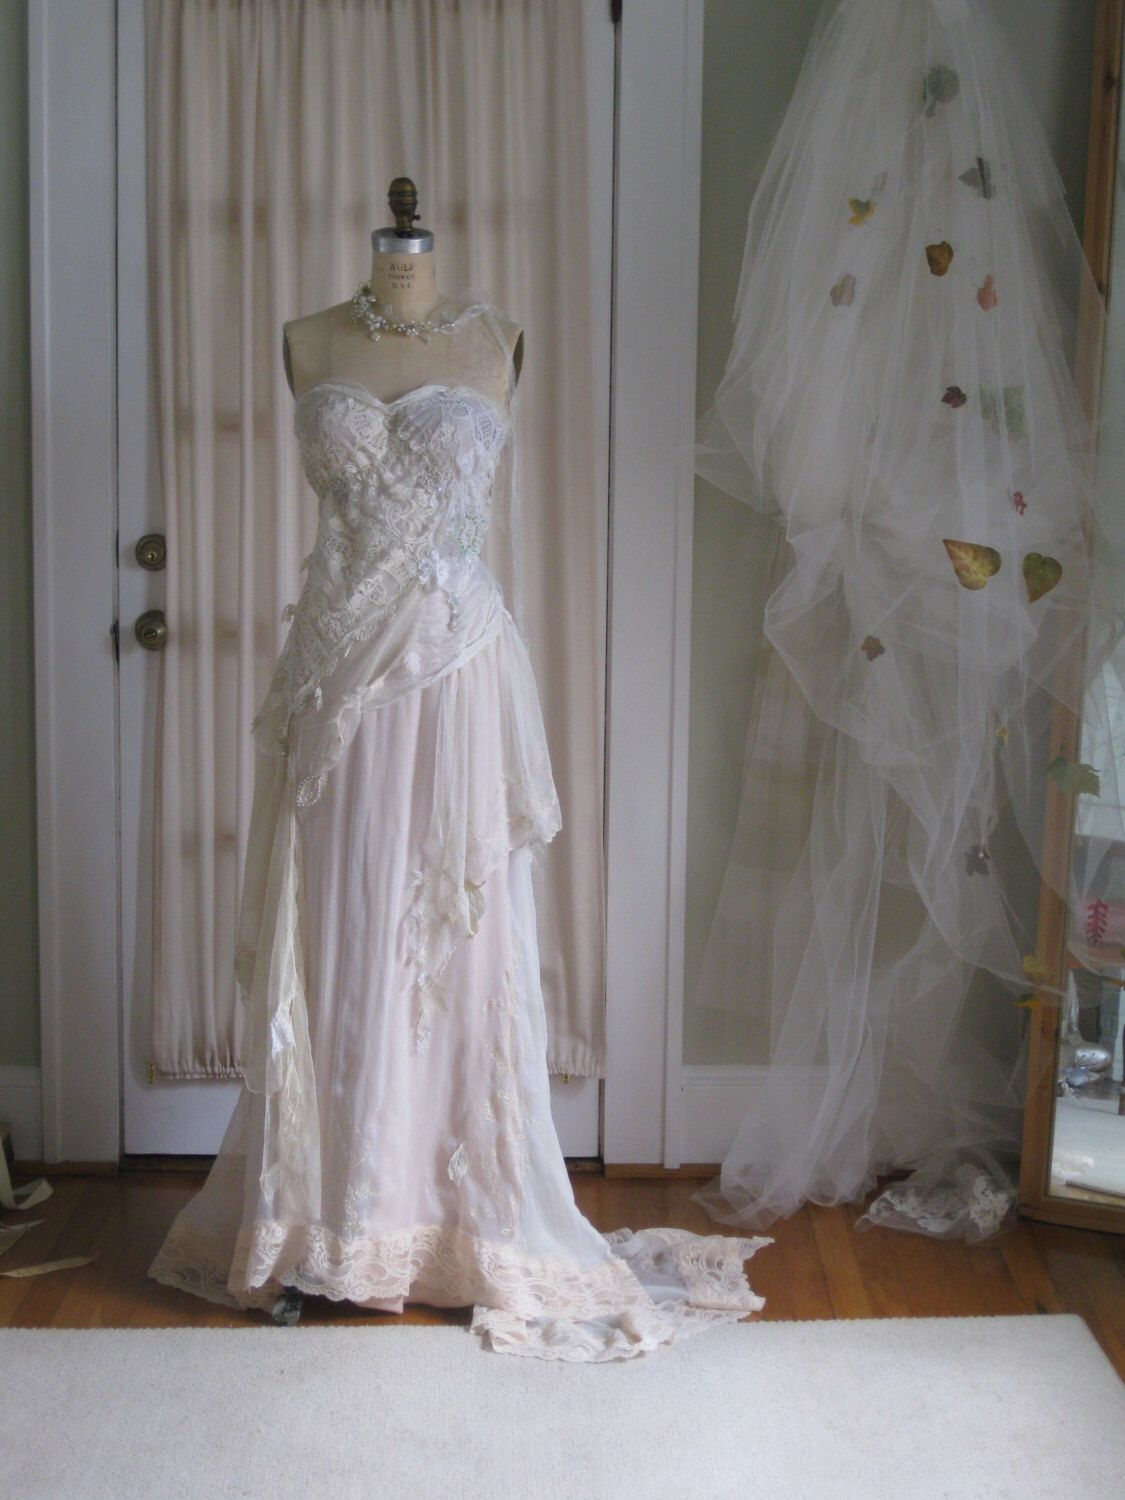 Strapless Fairy Ethereal Wedding gown by hippiebride on Etsy https://www.etsy.com/listing/223838014/strapless-fairy-ethereal-wedding-gown